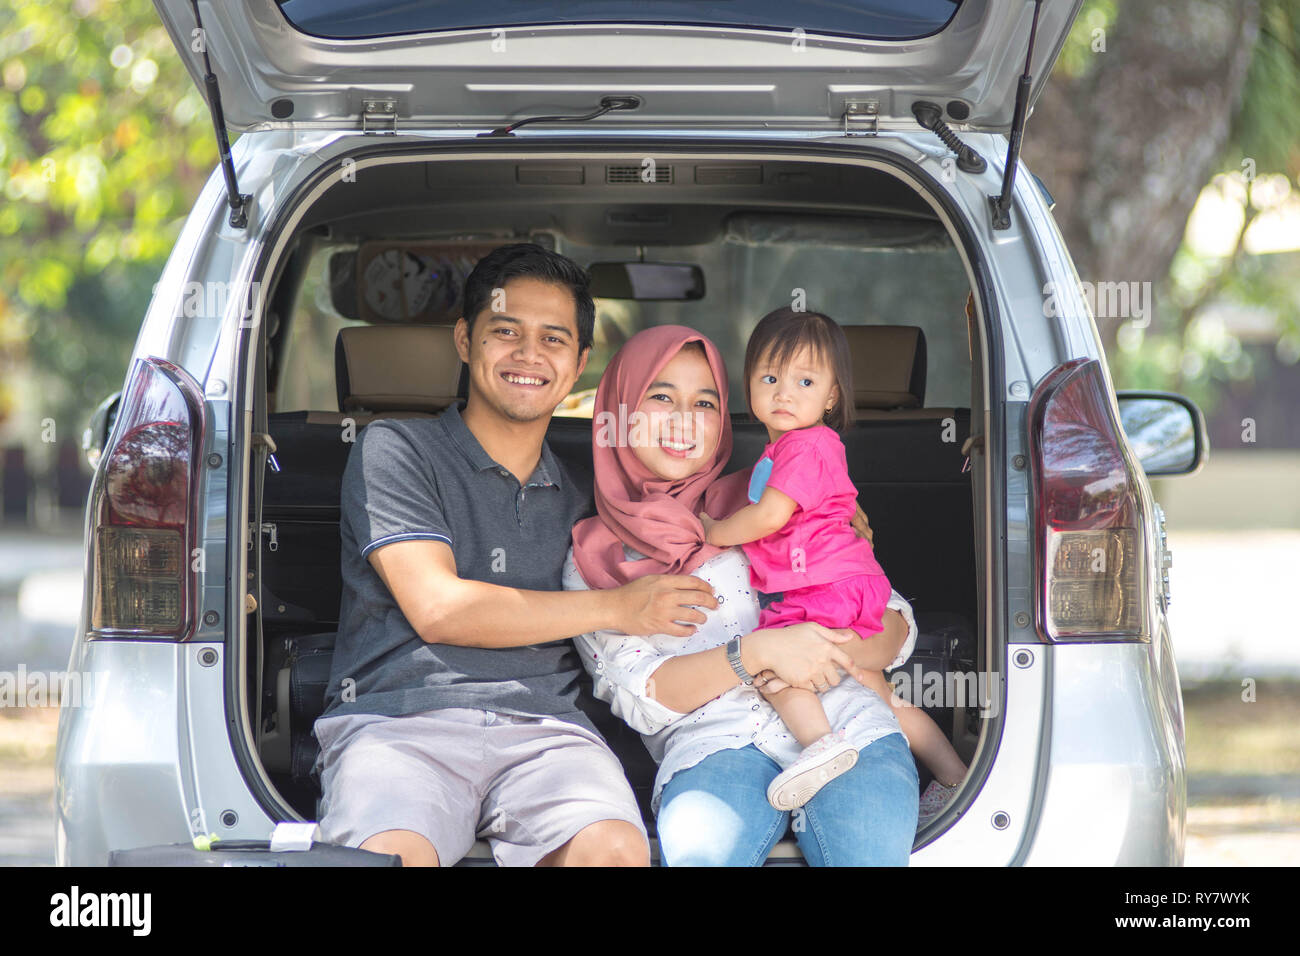 young muslim family , transport, leisure, road trip and people concept - happy man, woman and little girl sitting on trunk of hatchback car and smile - Stock Image